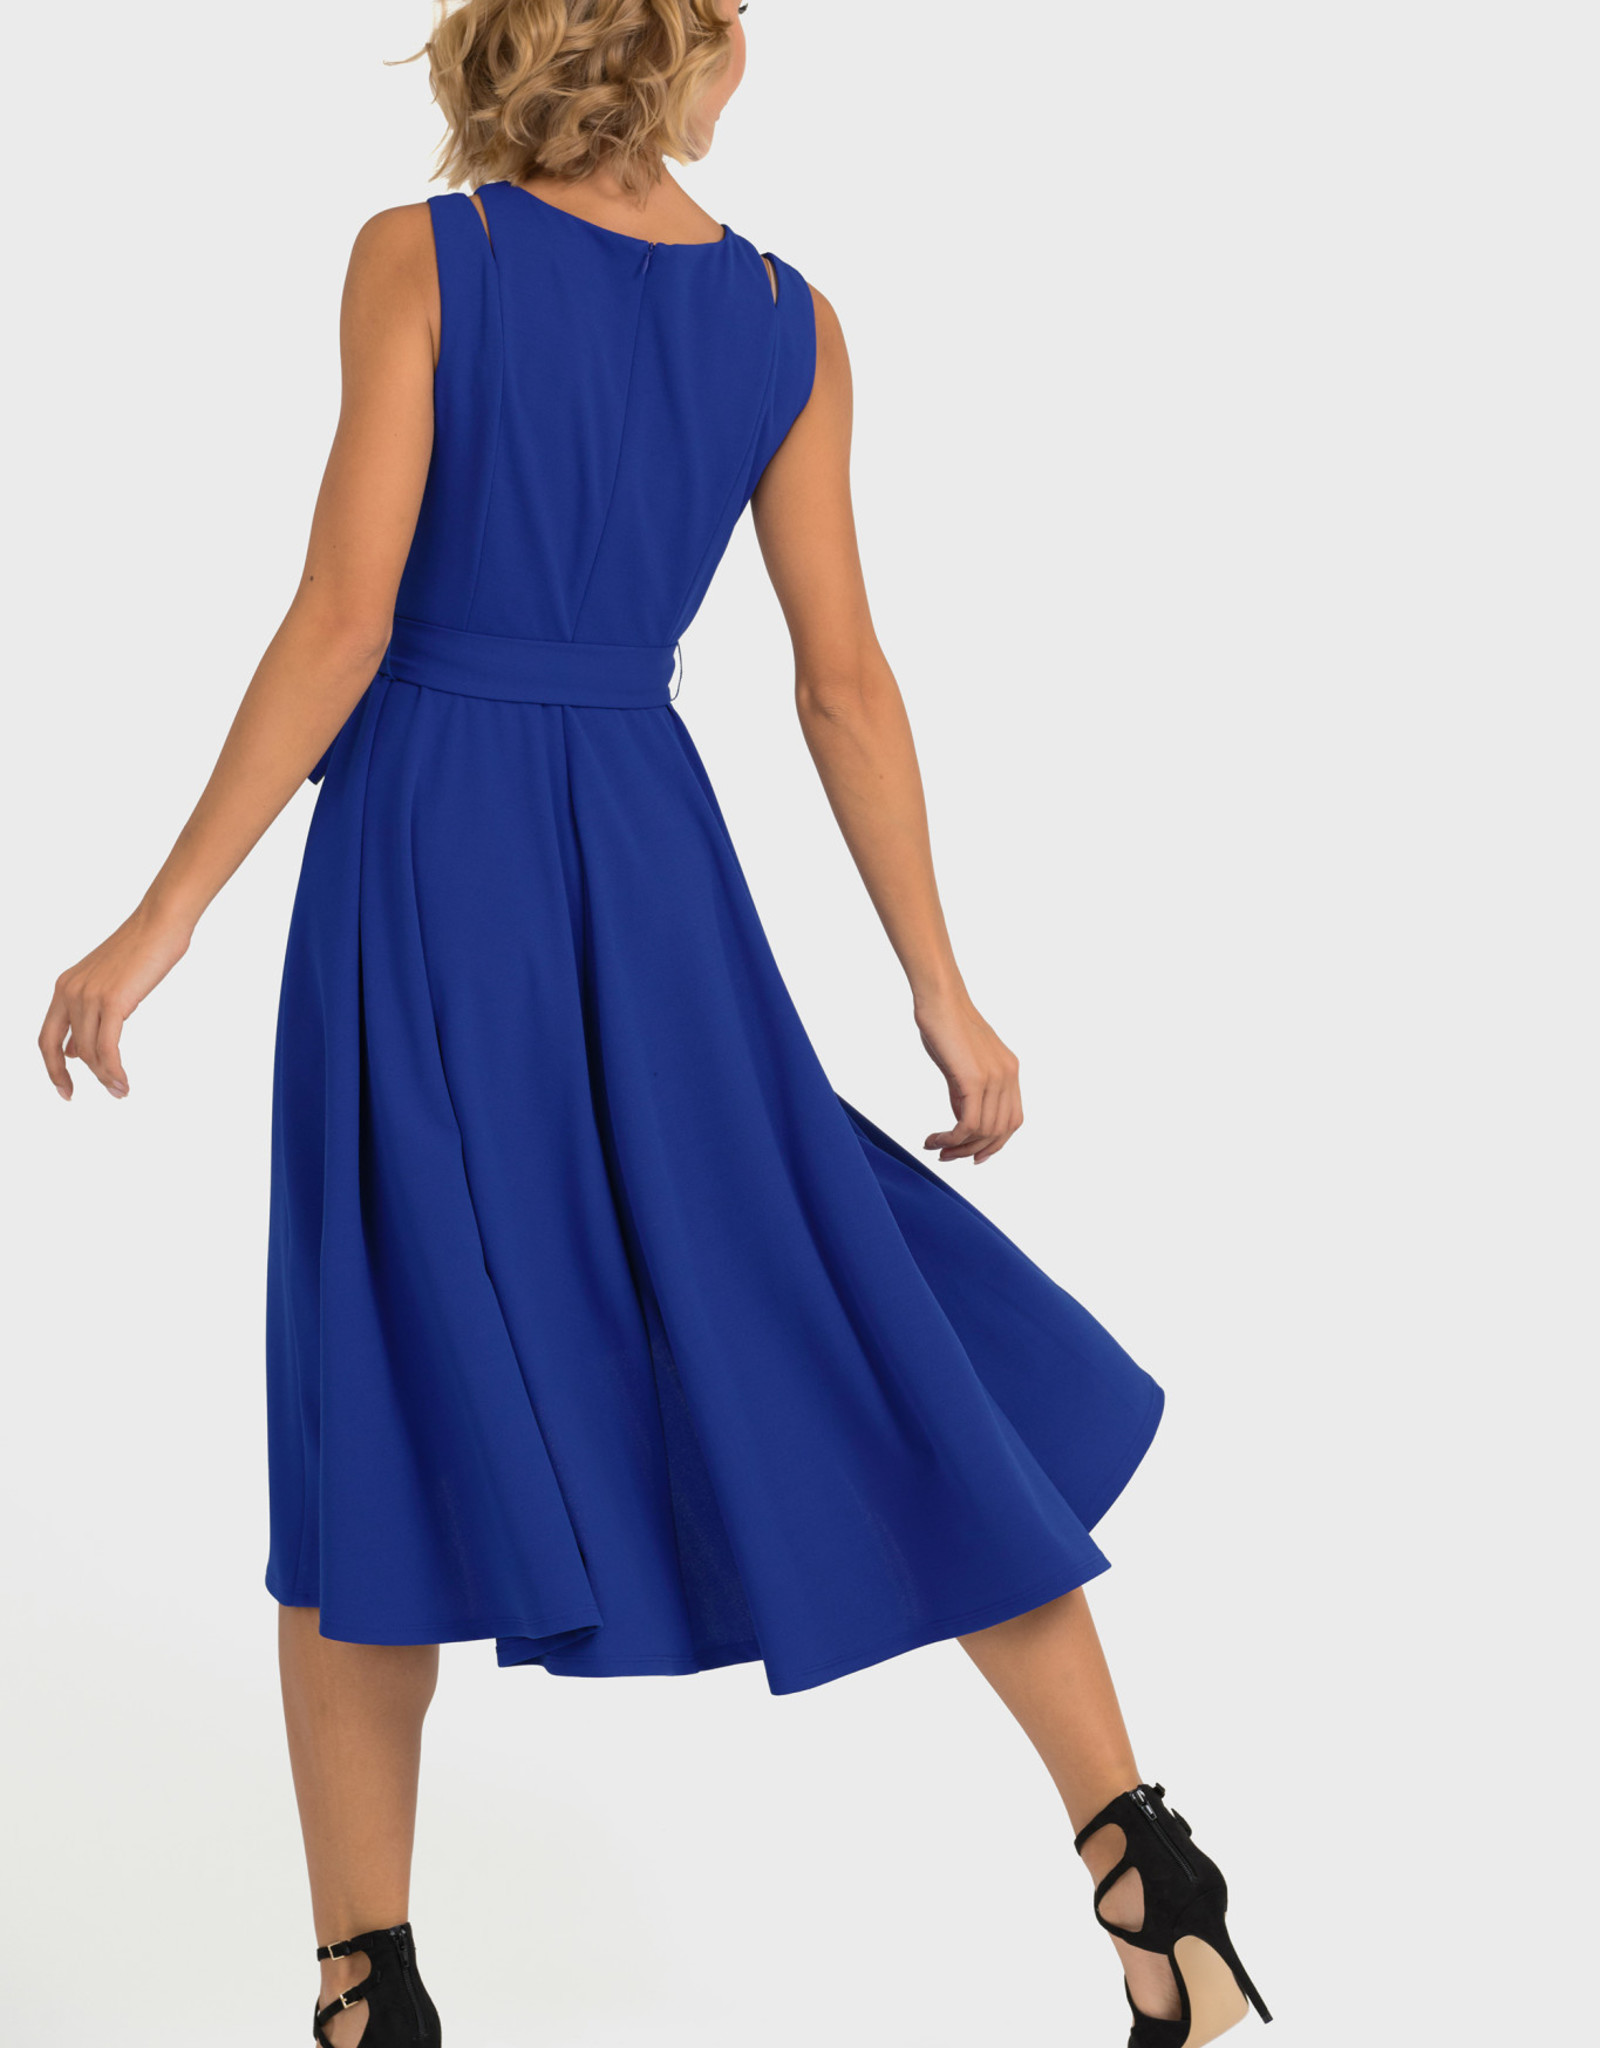 Joseph Ribkoff Belted Bow Dress